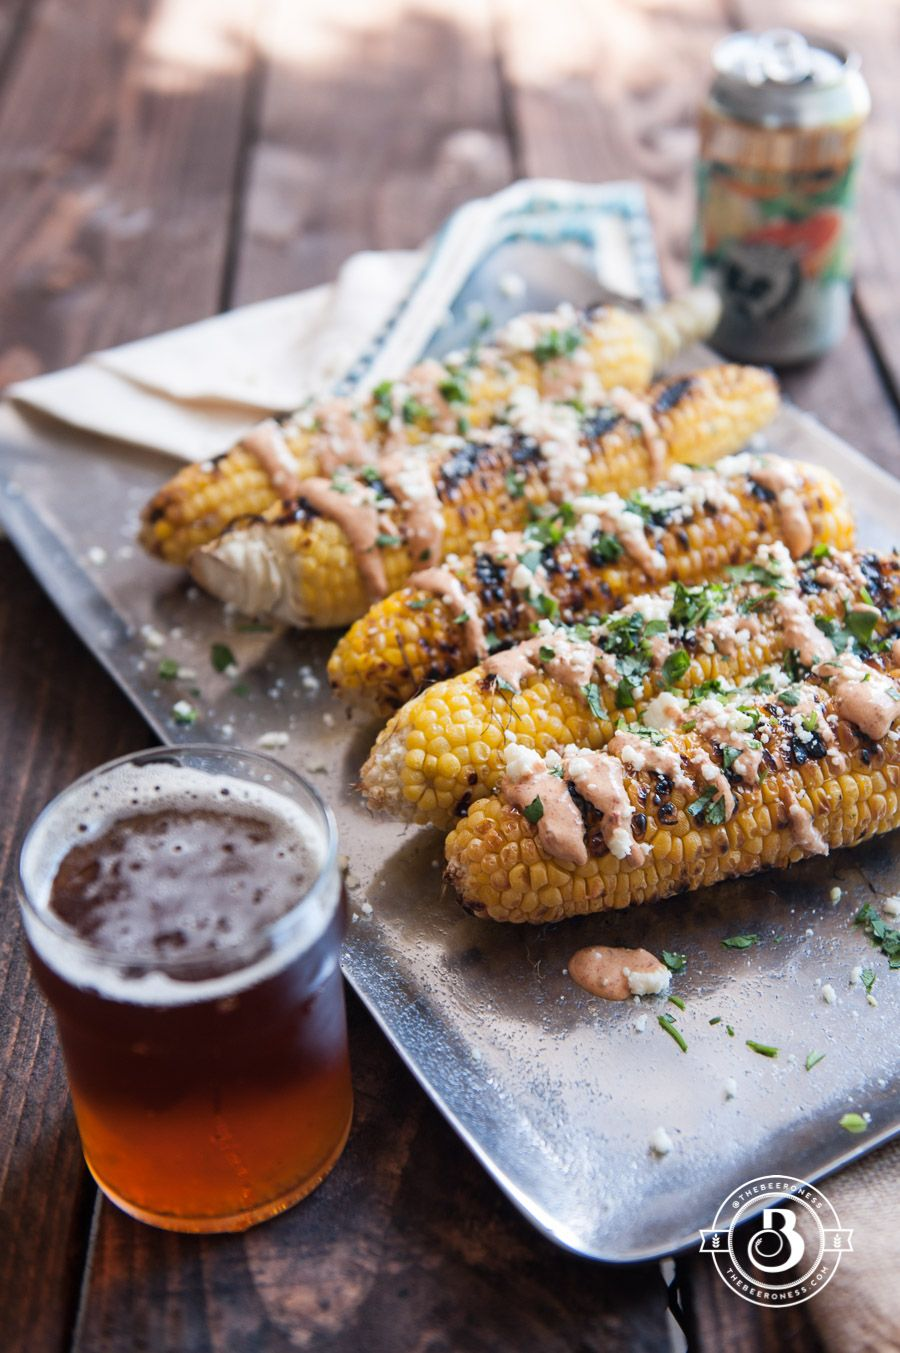 Grilled Street Corn with IPA Chipotle Cream What's The